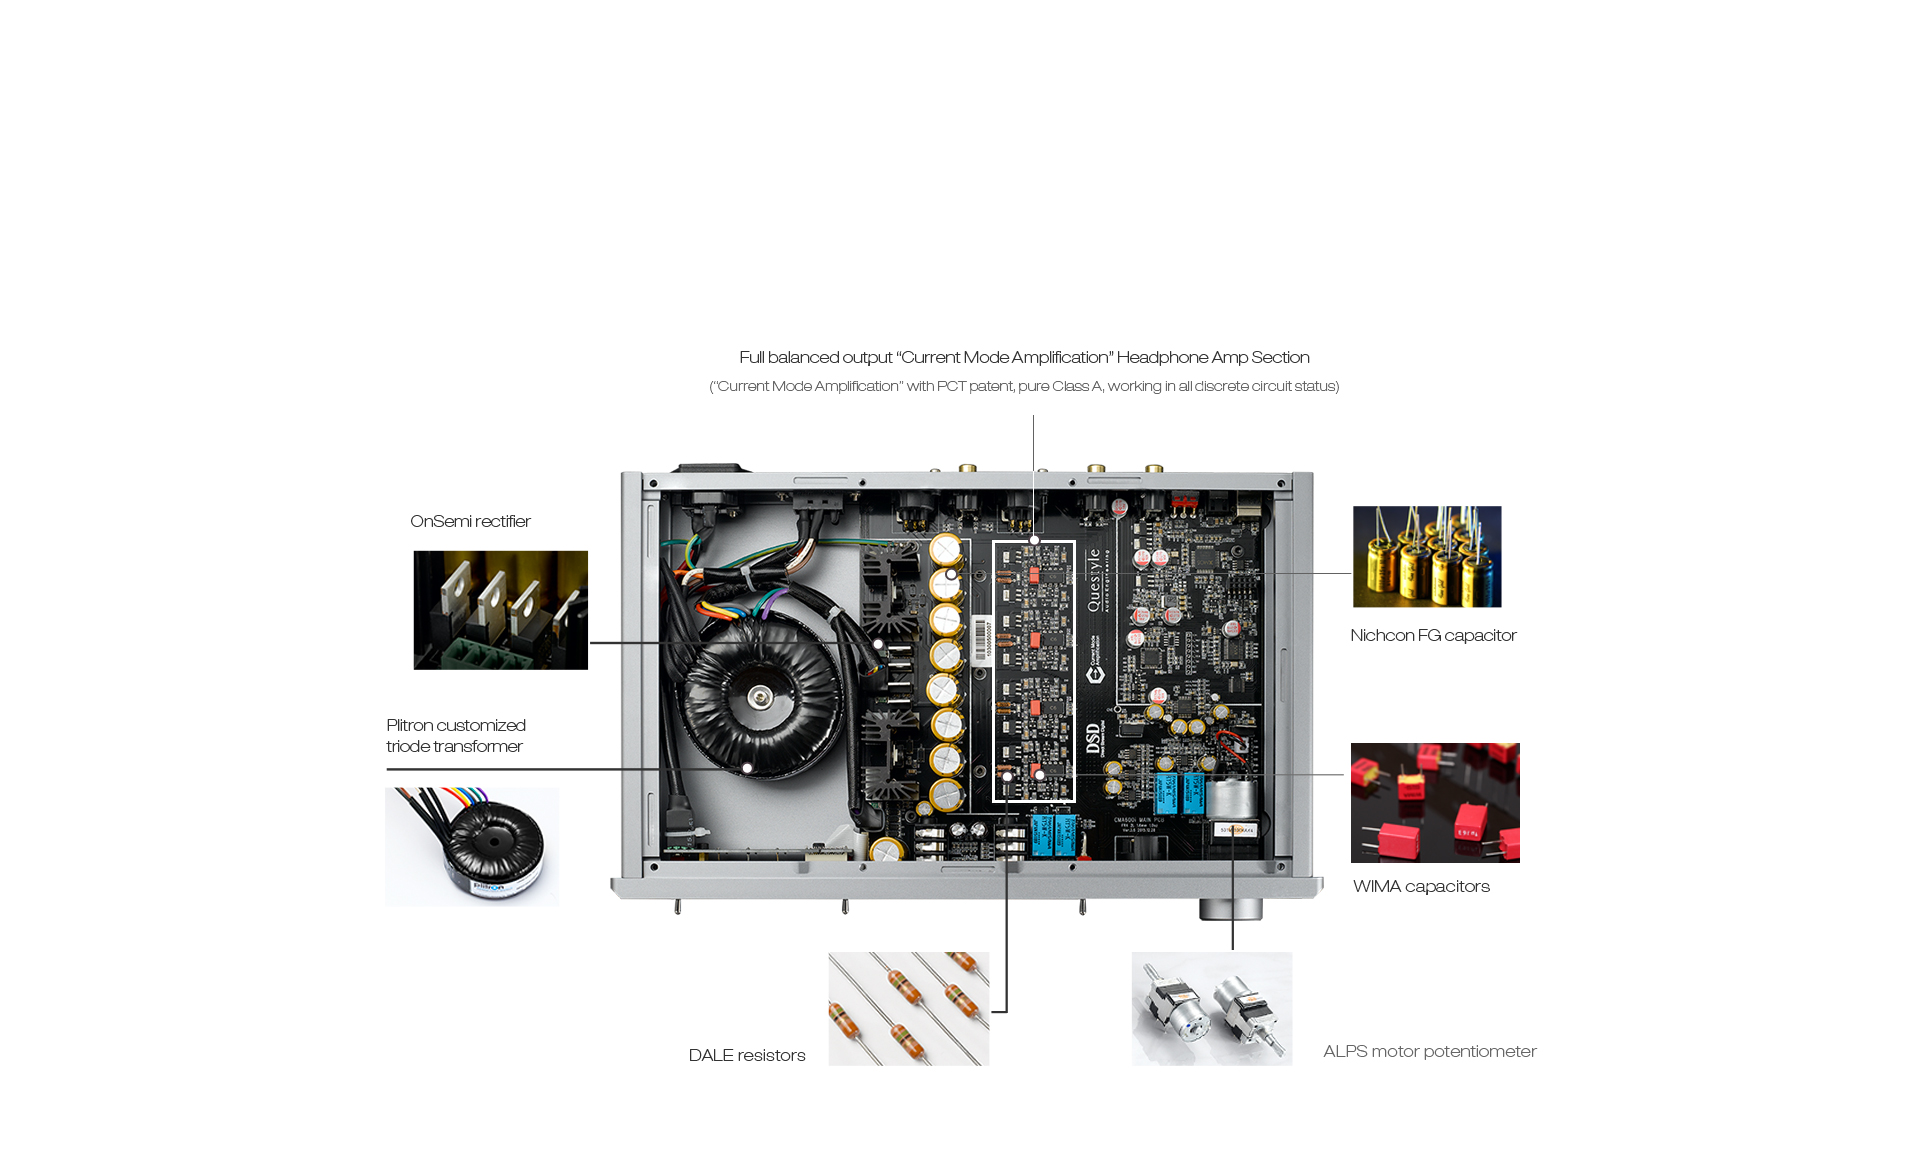 Questyle Cma600i Current Mode Amplification Headphone Dac Amp And Tpac Some Rca Converter Wiring Diagram 6360289397105752612403525